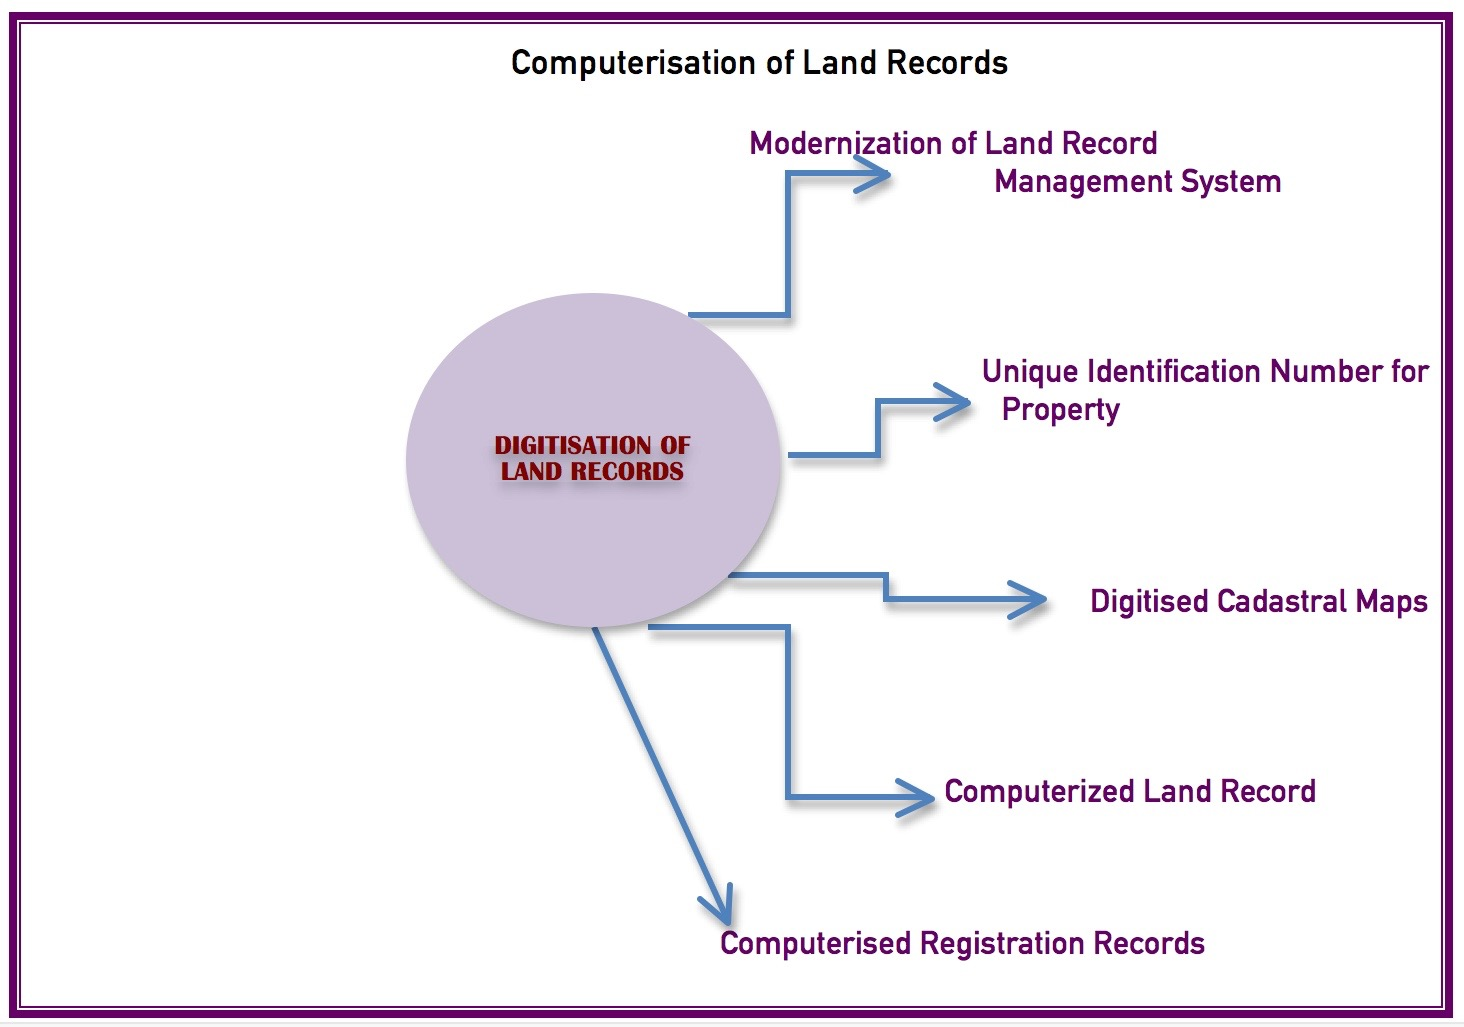 Impact of Digitisation of Land Record